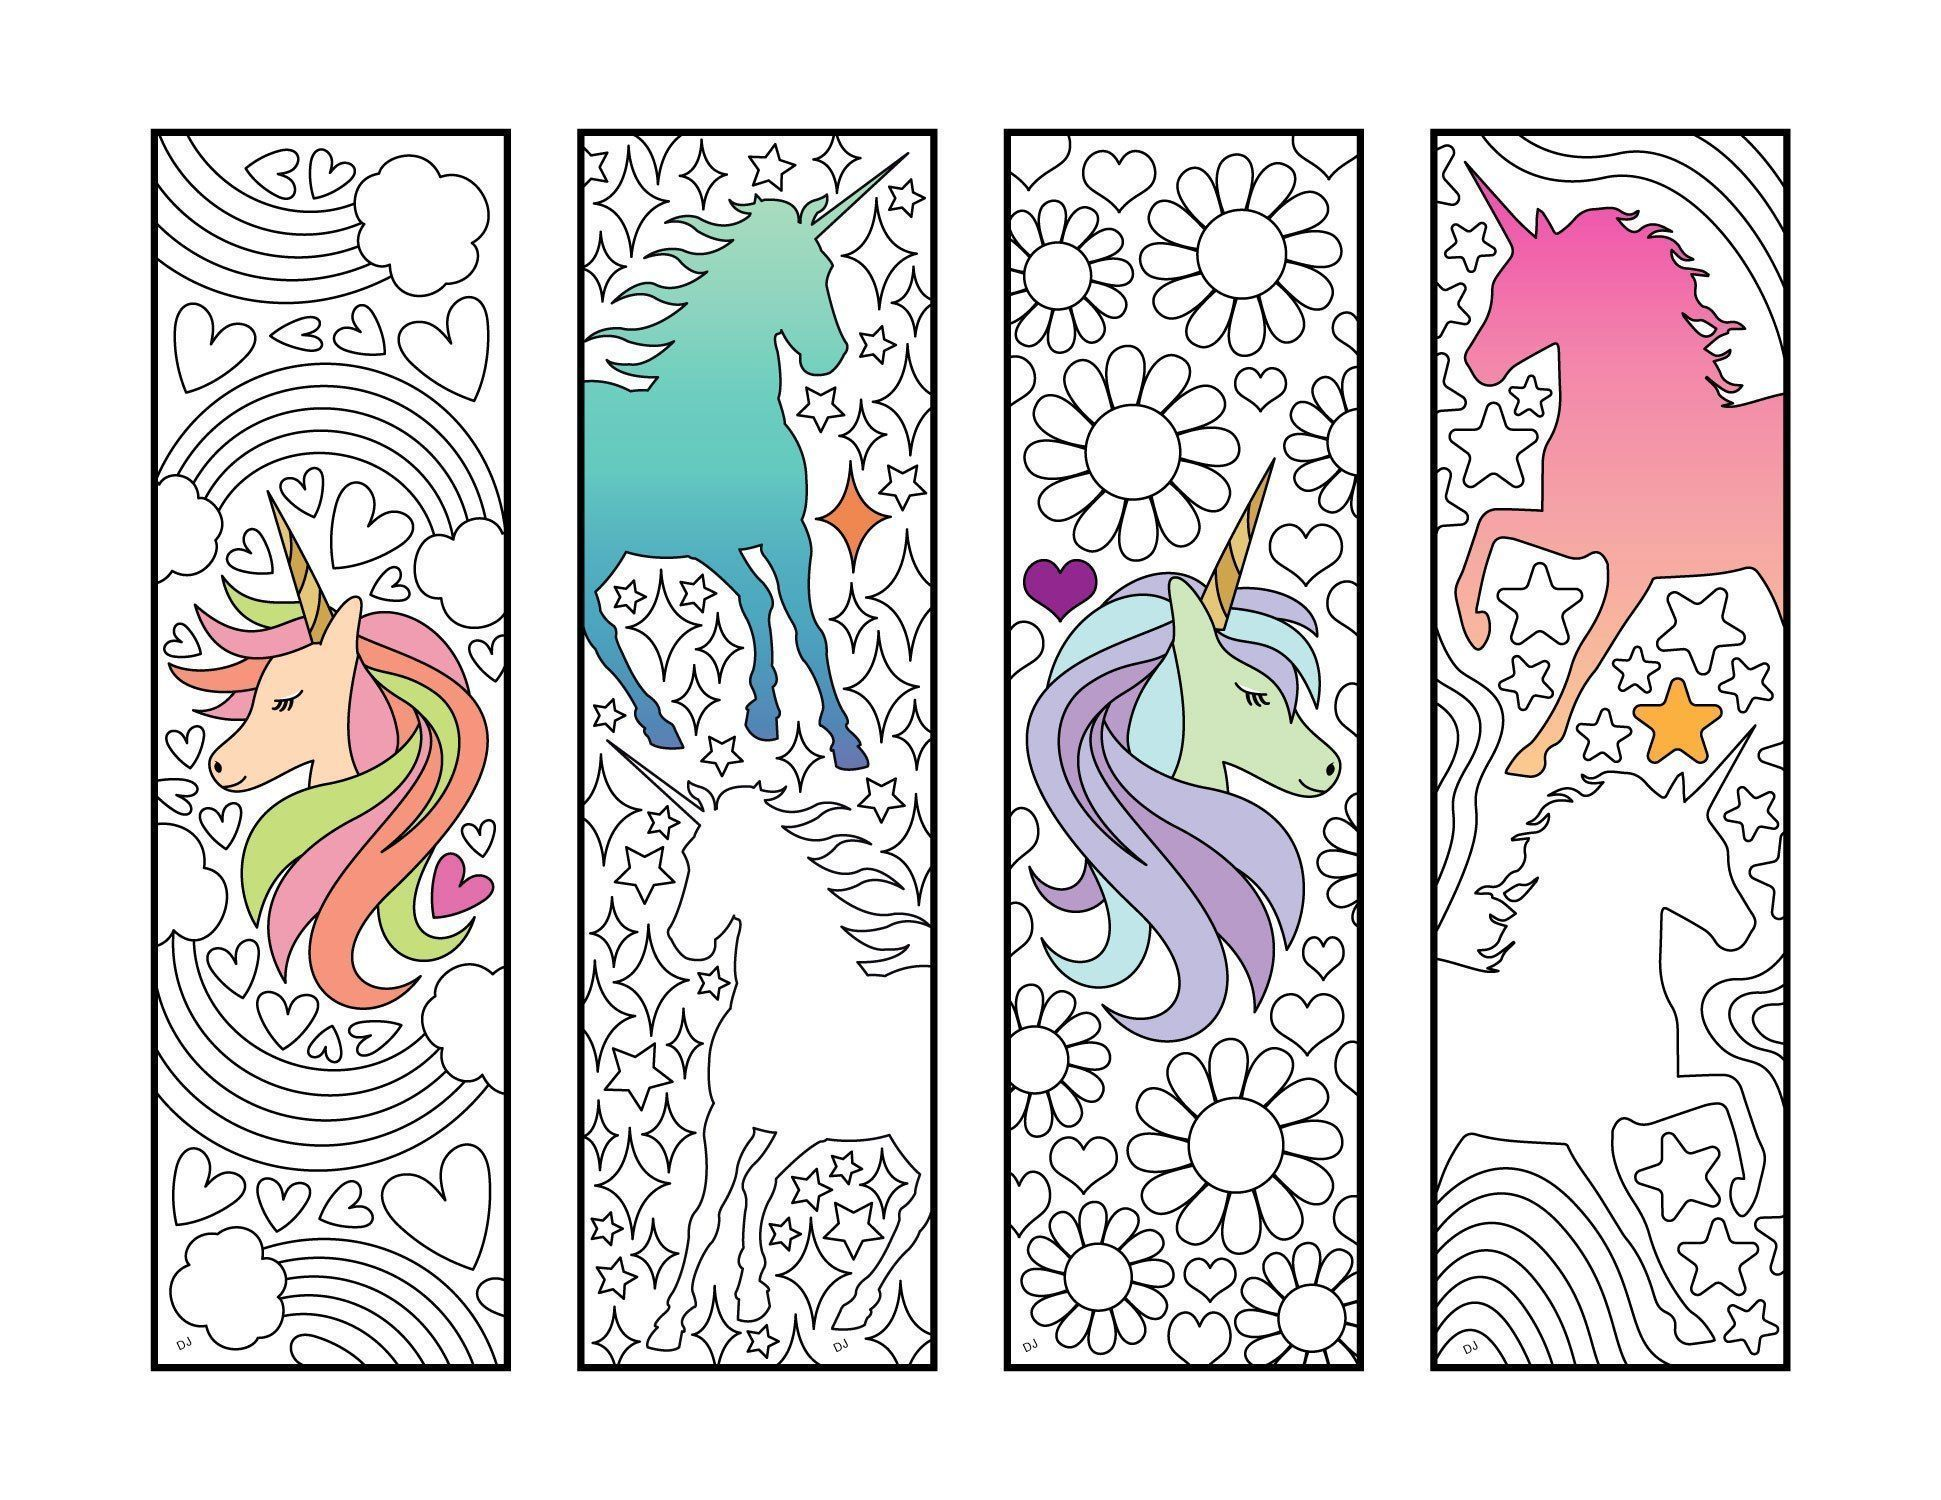 Unicorn Bookmarks Pdf Zentangle Coloring Page Scribble Stitch Coloriage Halloween A Imprimer Coloriage Halloween A Imprimer Coloriage Halloween A Imprimer Licorne A Colorier Et Coloriage Halloween